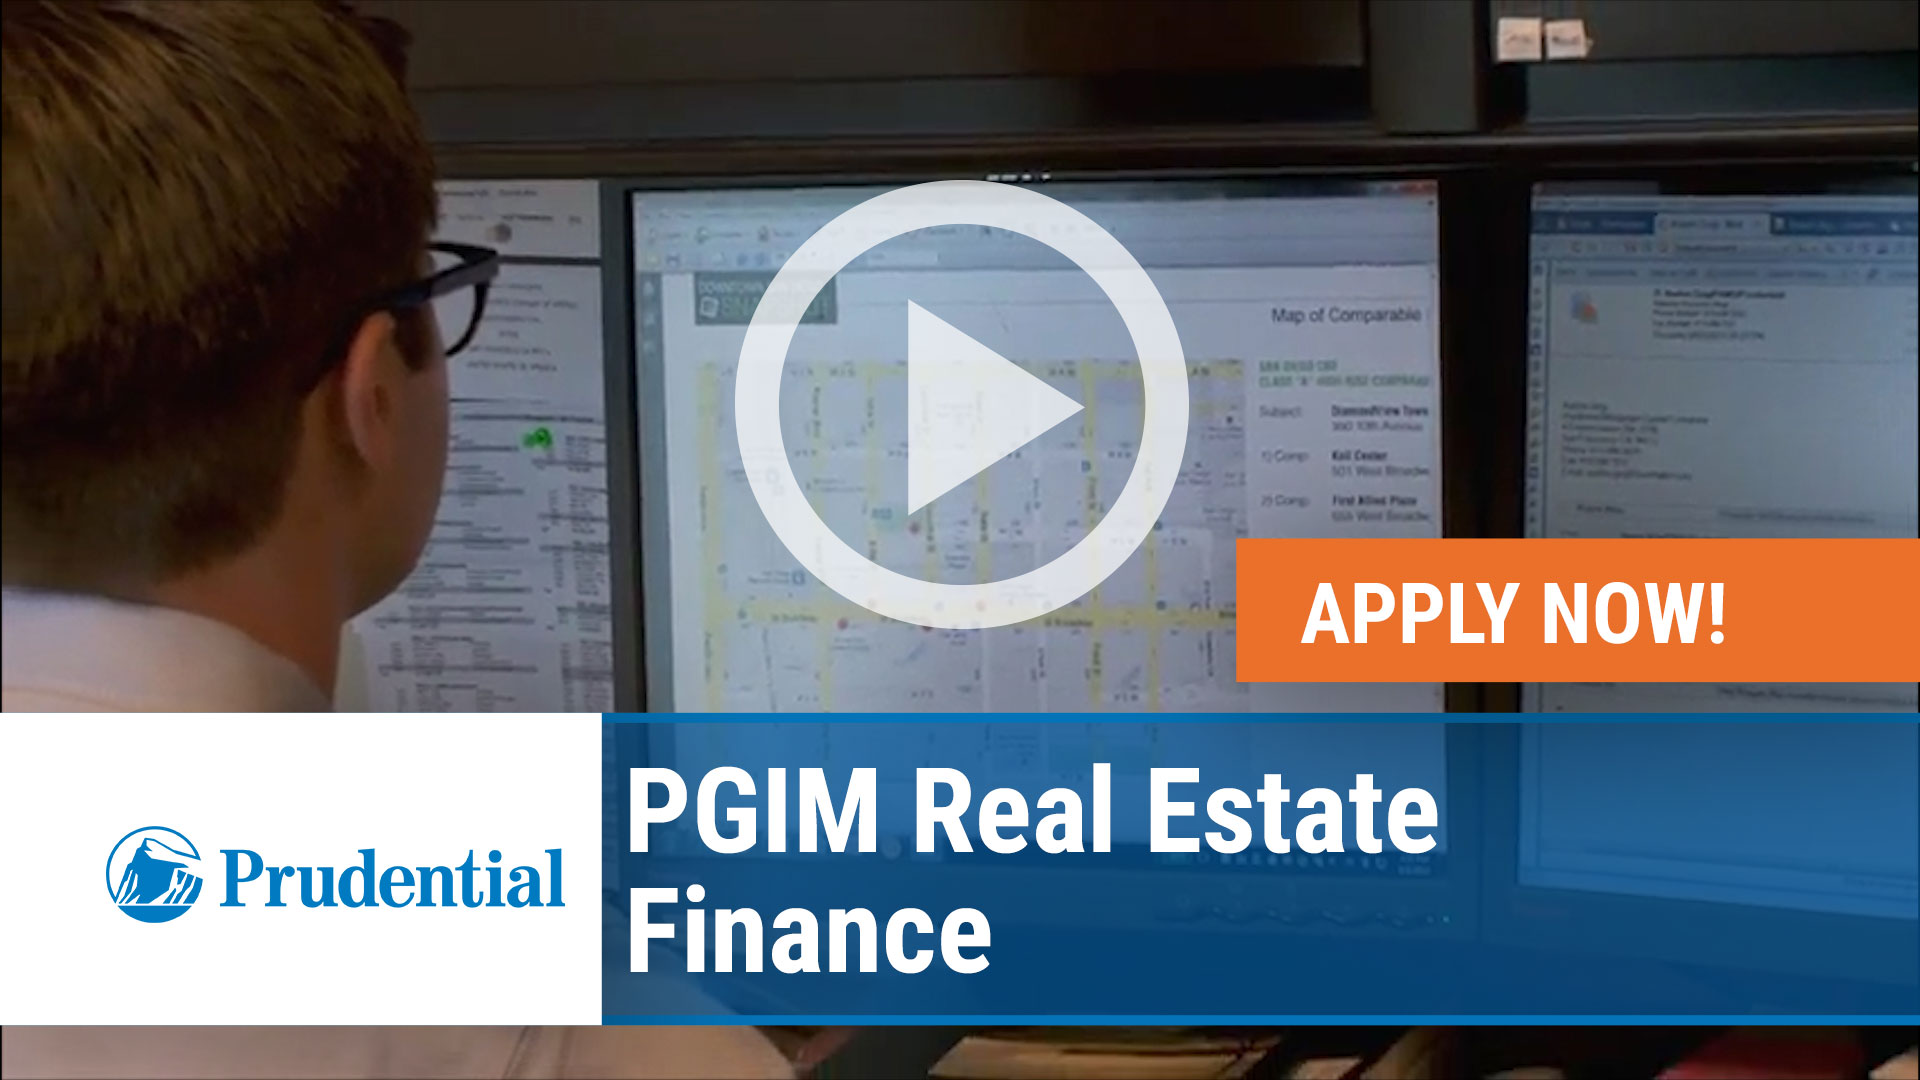 Watch our careers video for available job opening PGIM Real Estate Finance in Newark, NJ